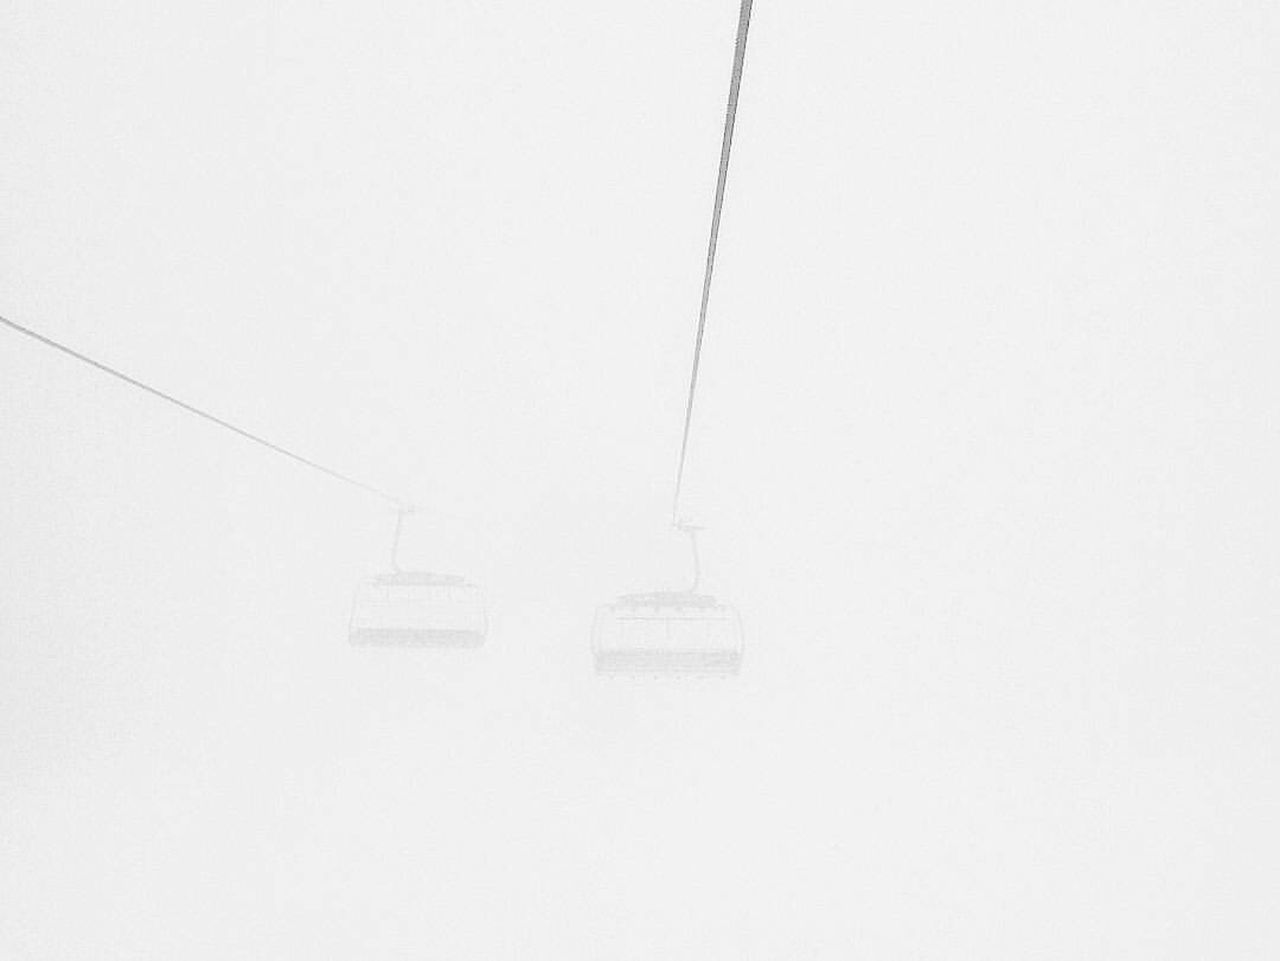 SNOW COVERED OVERHEAD CABLE CAR IN WINTER